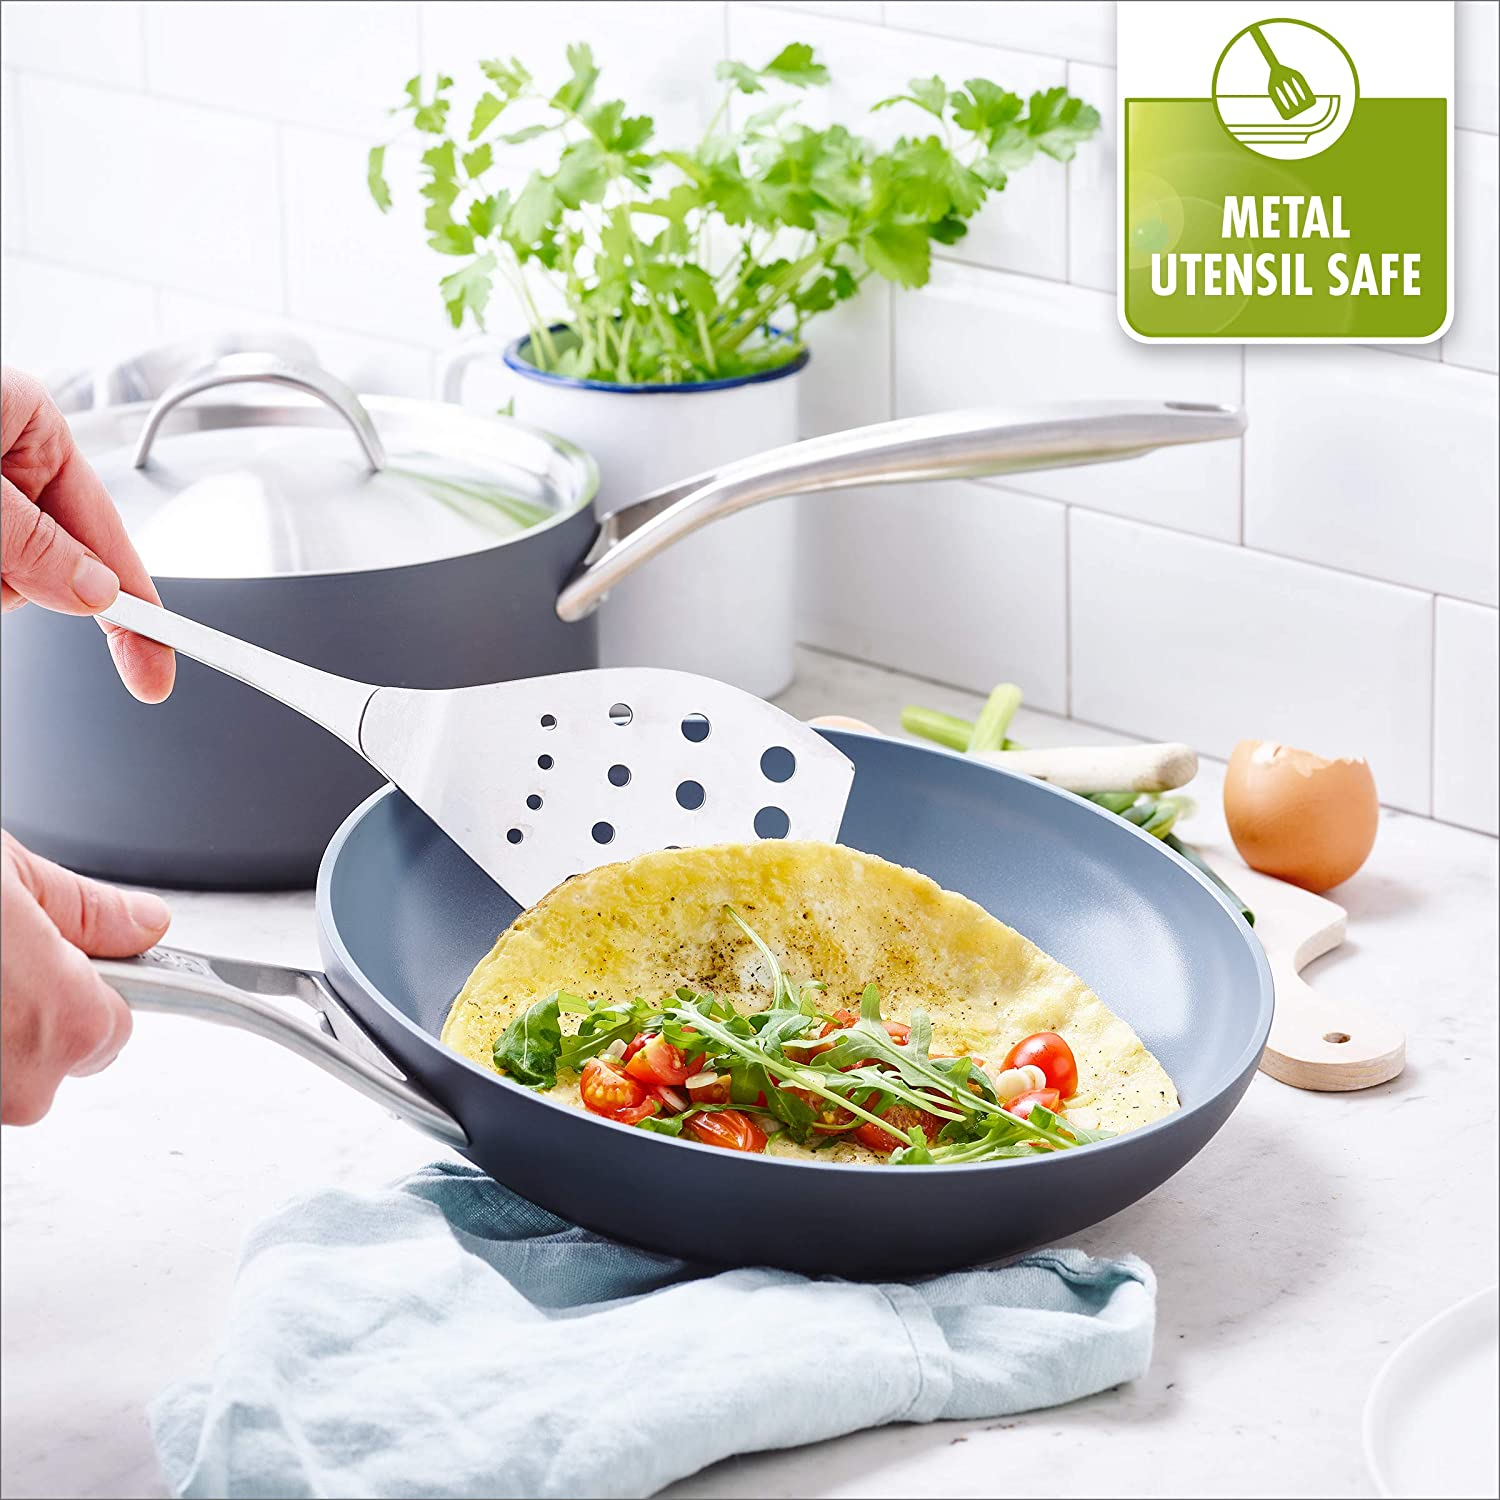 GreenPan Paris 4 Quart Ceramic Non-Stick Covered Saute Pan with Helper Handle